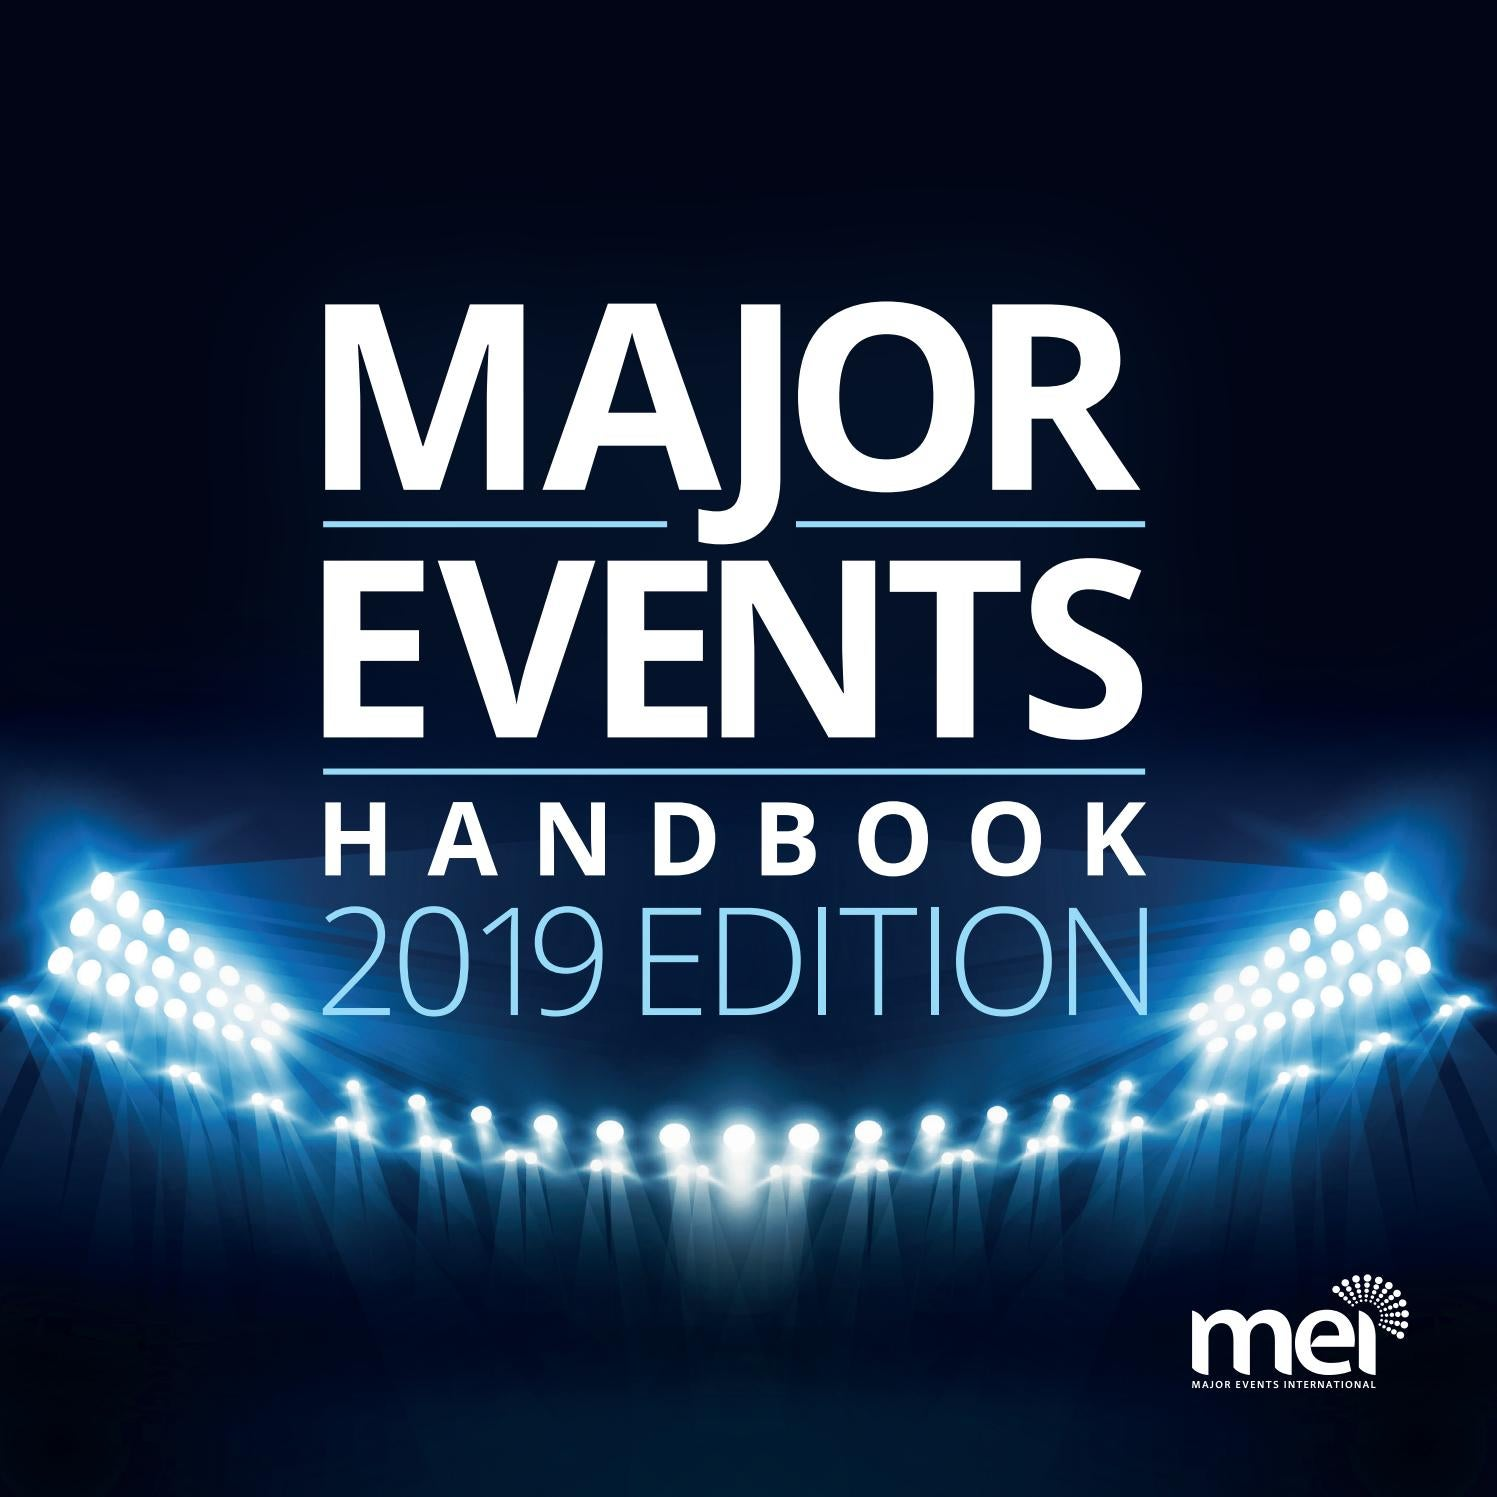 Major Events Handbook 2019 Edition by Major Events International - issuu